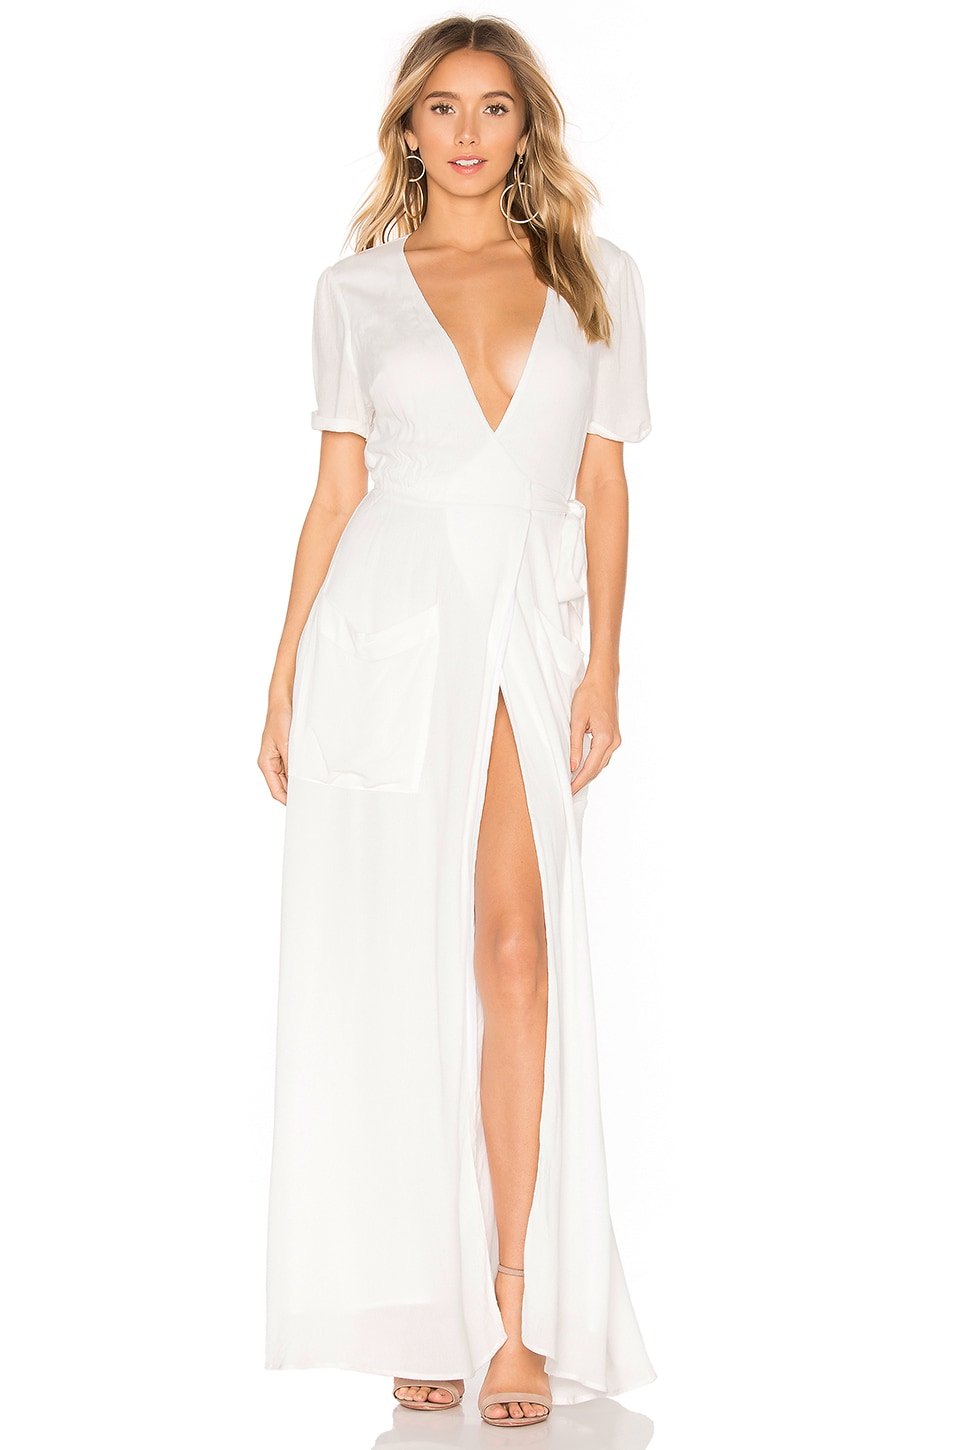 THE JETSET DIARIES Freebird Maxi Dress in White